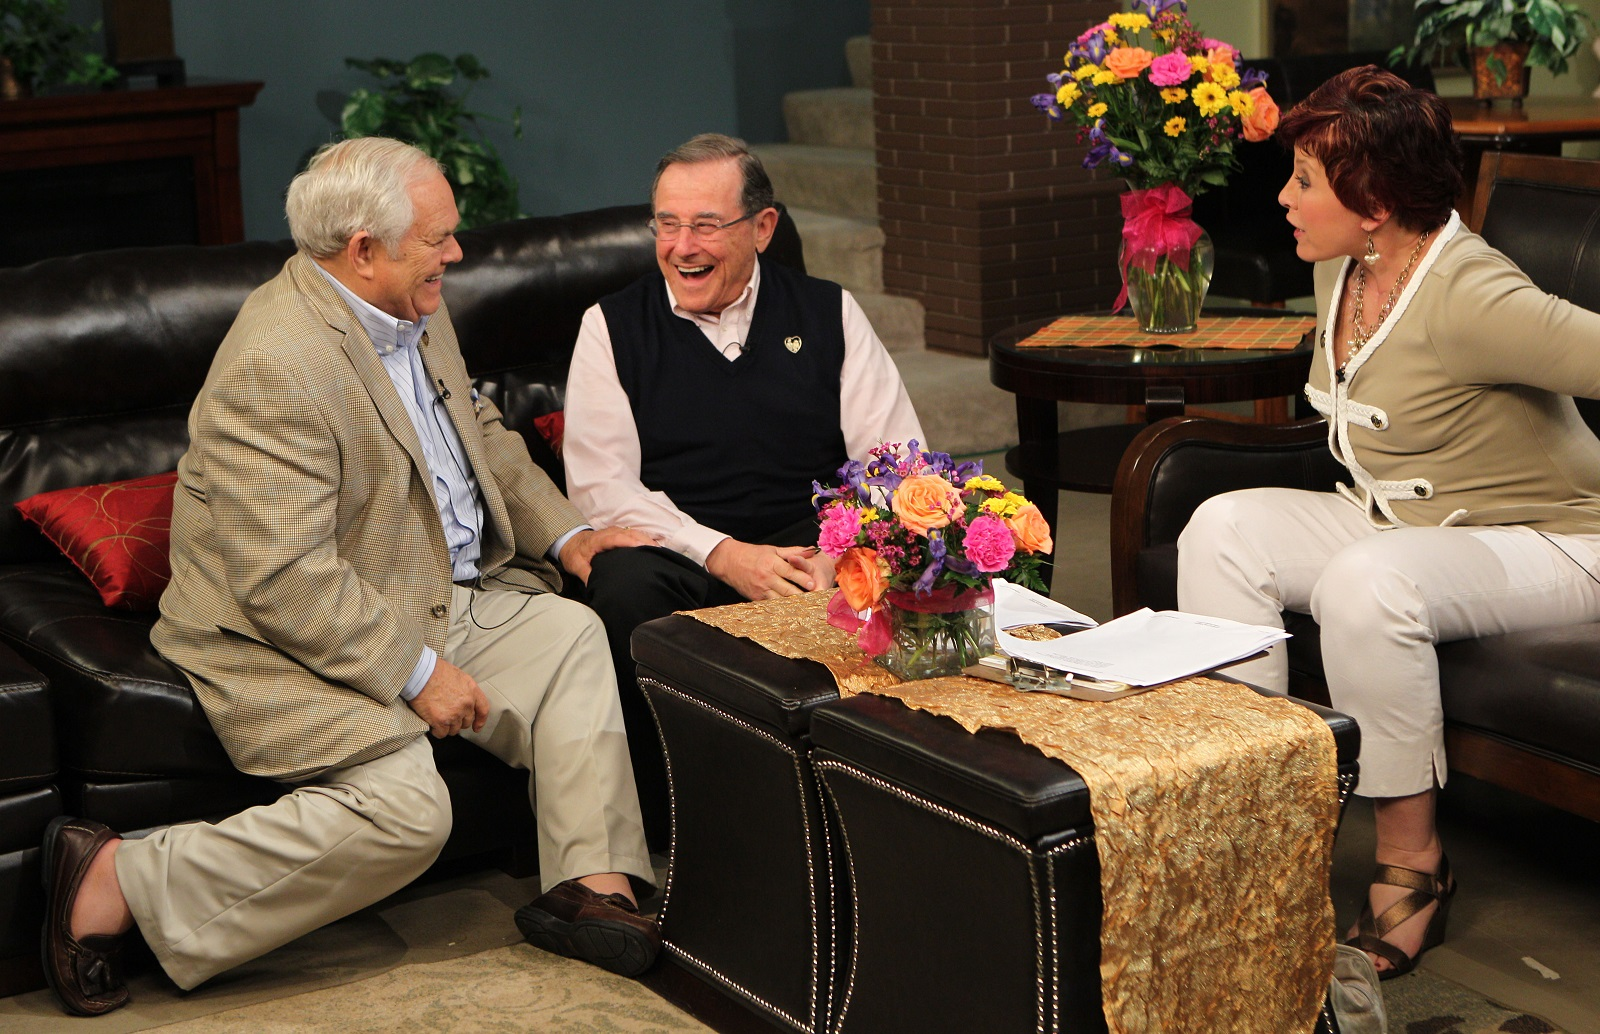 Irv Weinstein, center, joined former GM Phil Beuth, left, on AM Buffalo with Linda Pellegrino, in 2012. The mainstay of Channel 7 for nearly 40 years is going from a 60-minute to 30-minute show. (Photo by Sharon Cantillon / Buffalo News)